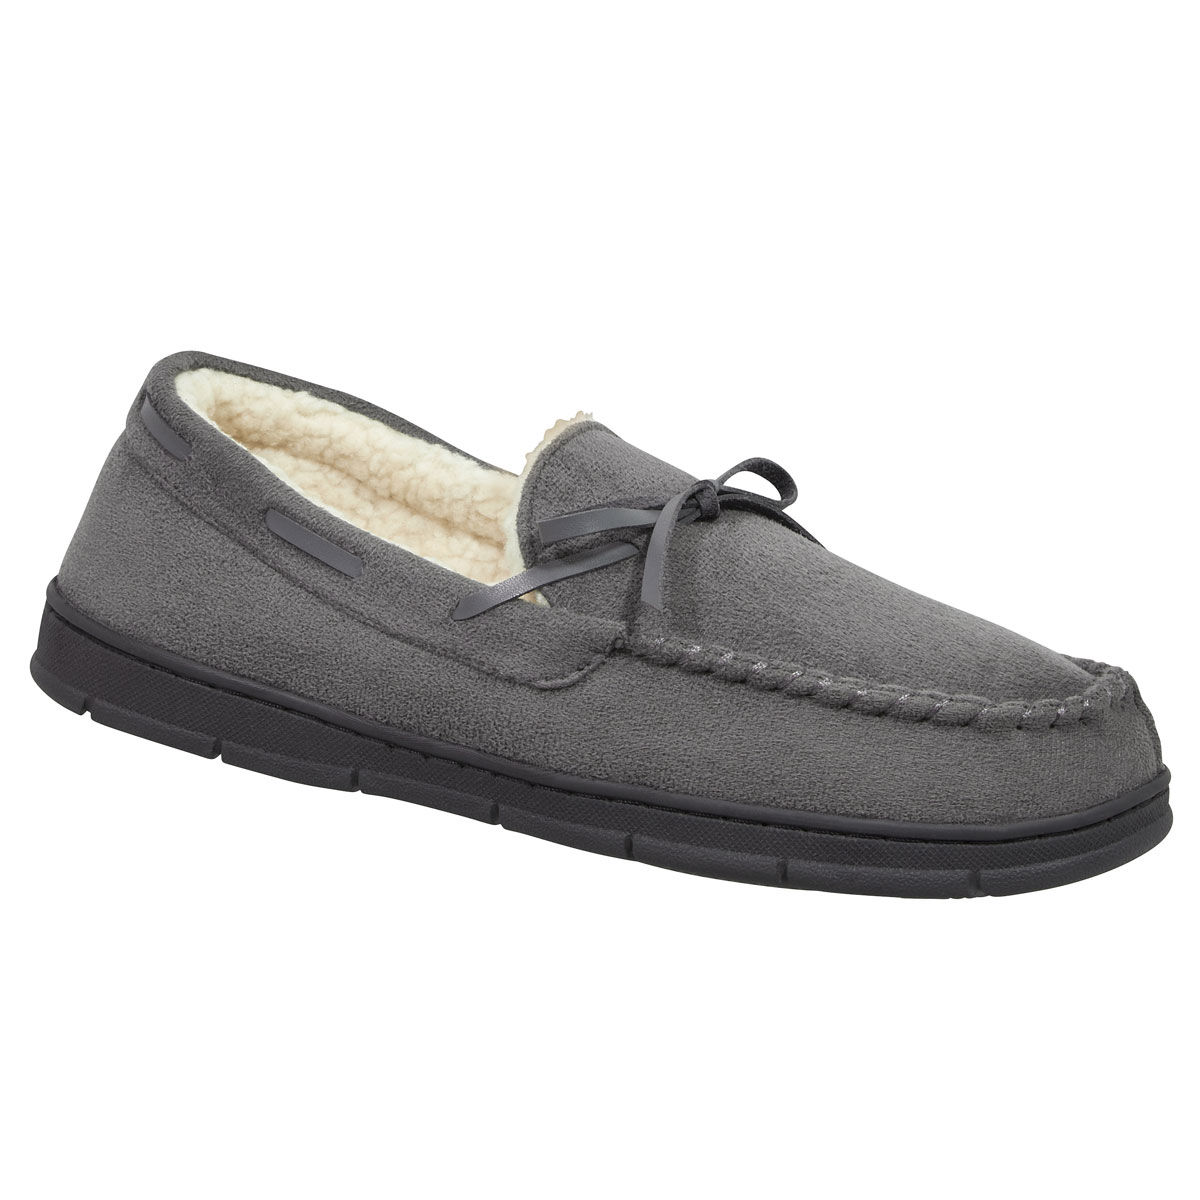 Smiths Mens Moccasins